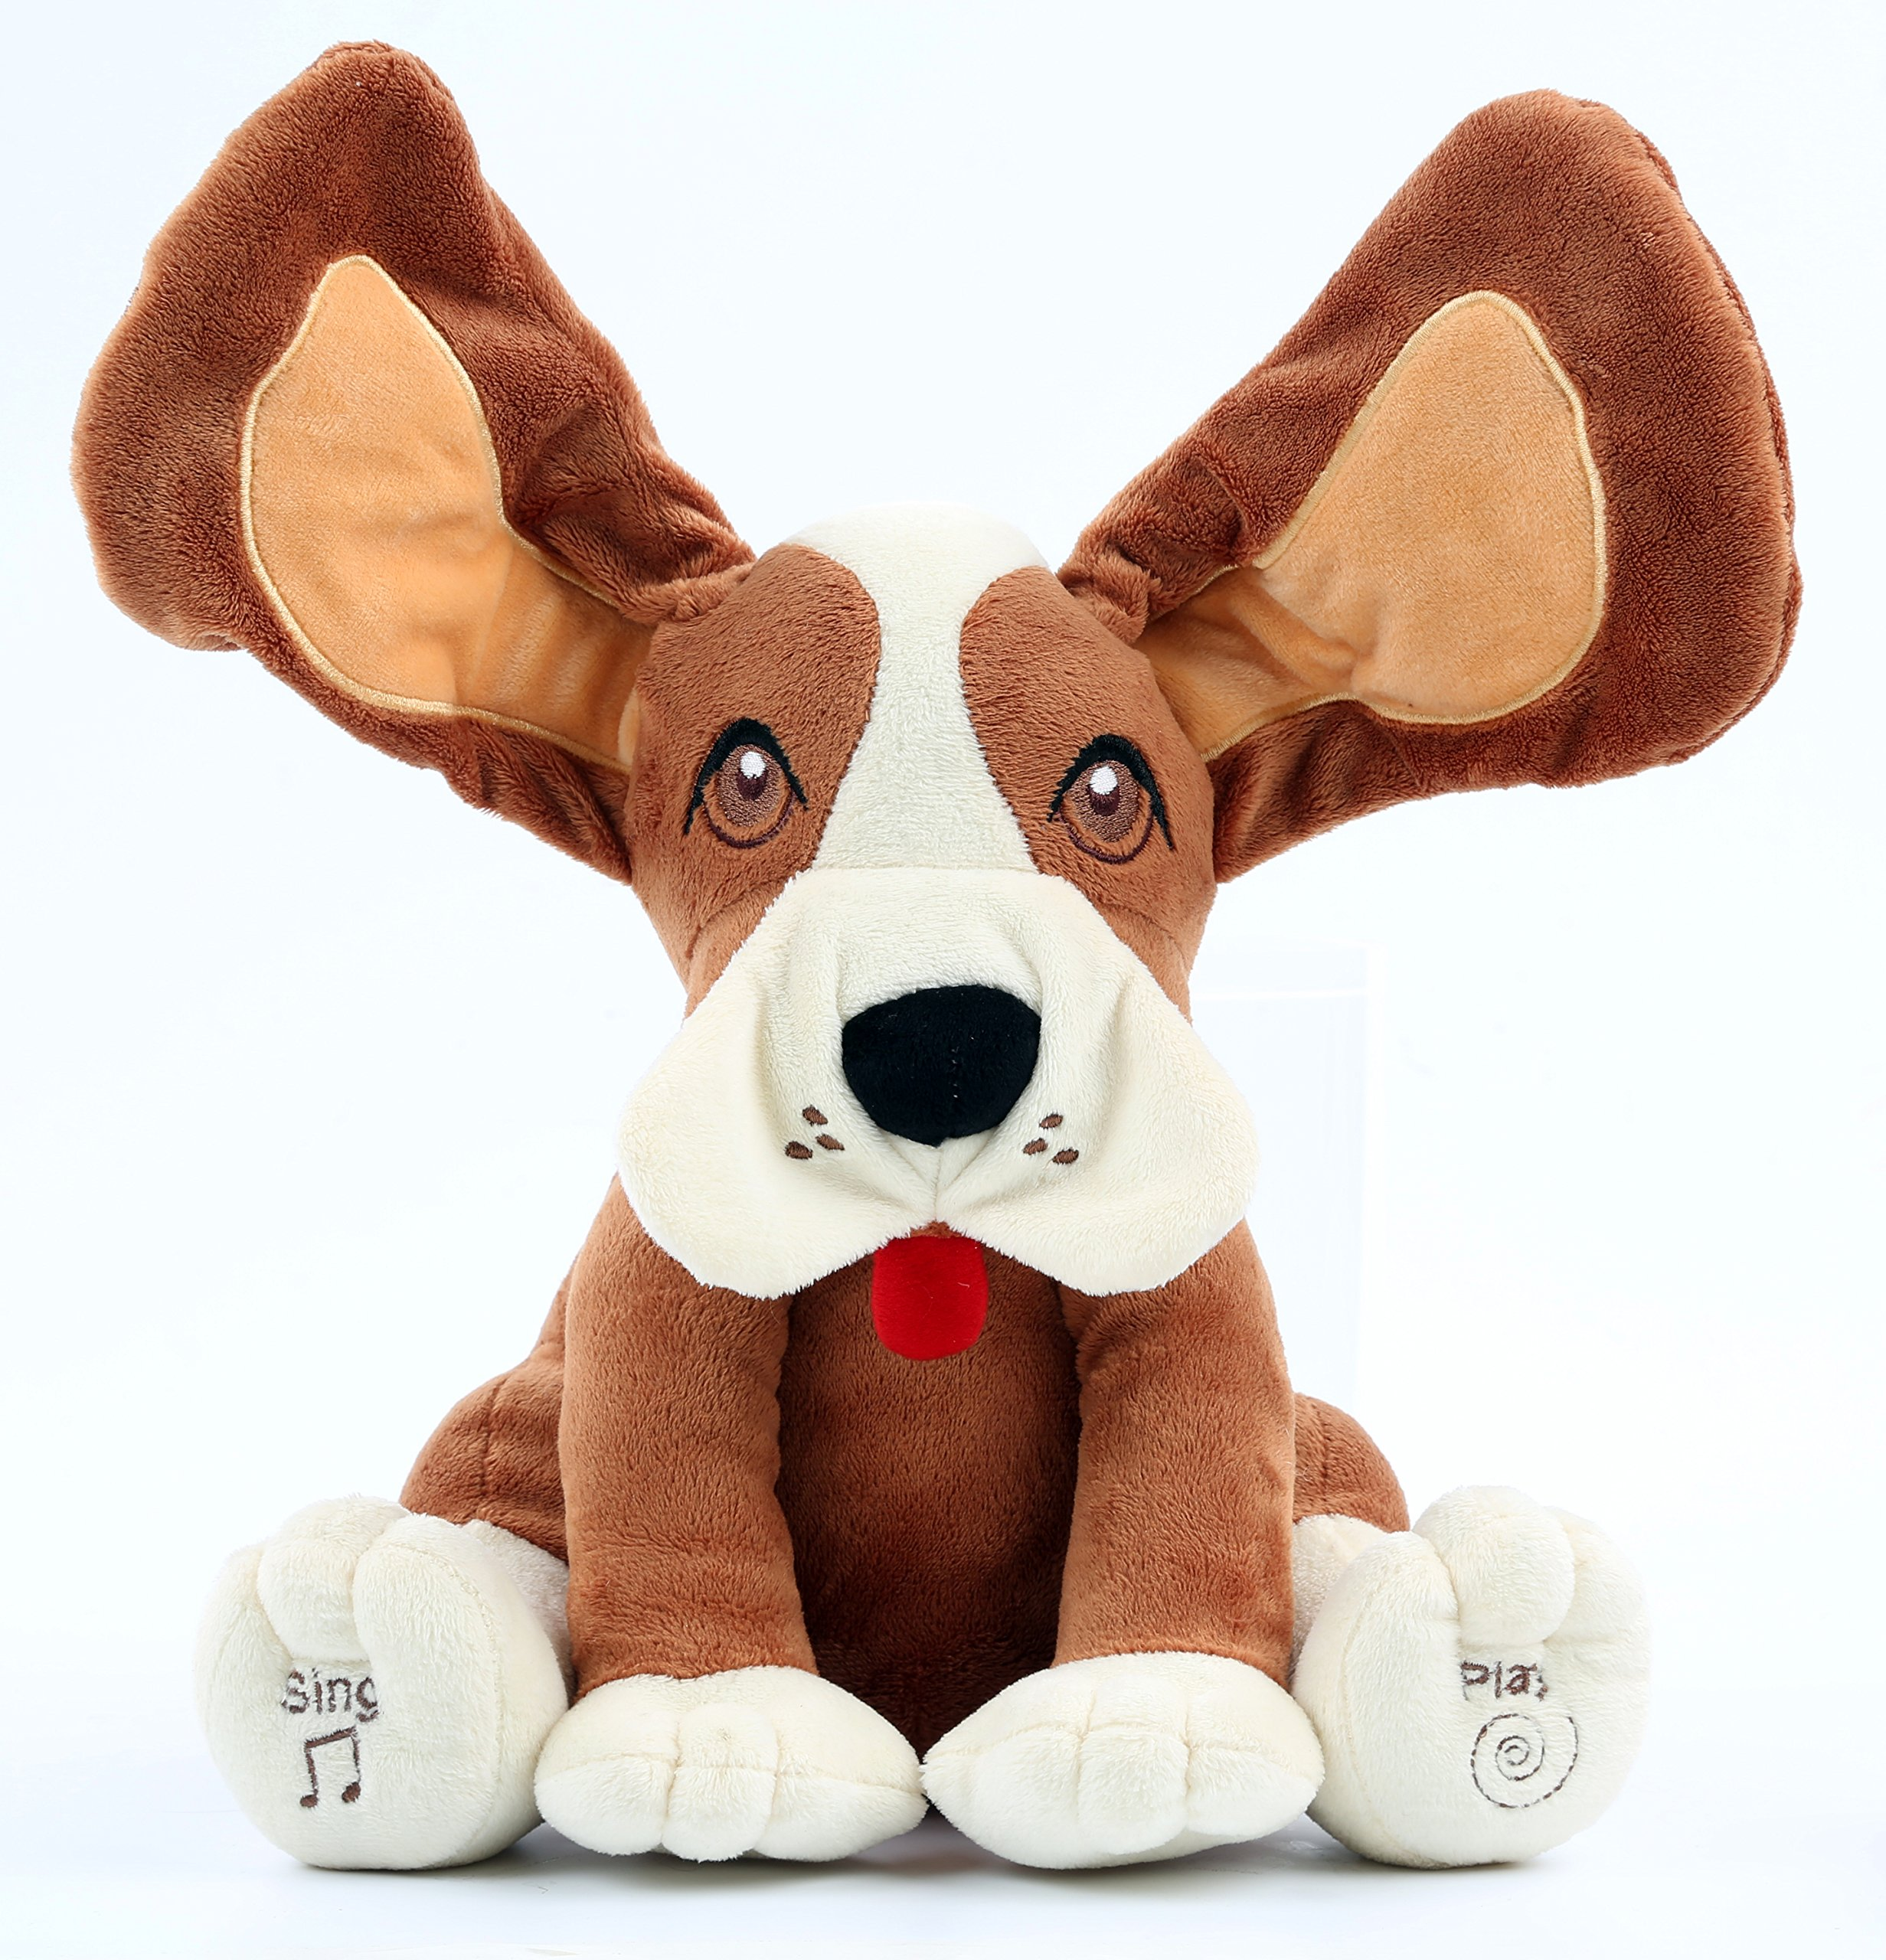 Animal House Plush Peek A Boo Singing Dog with Floppy Ears | Plays Peek-A-Boo & Sings Do Your Ears Hang Low? by Animal House